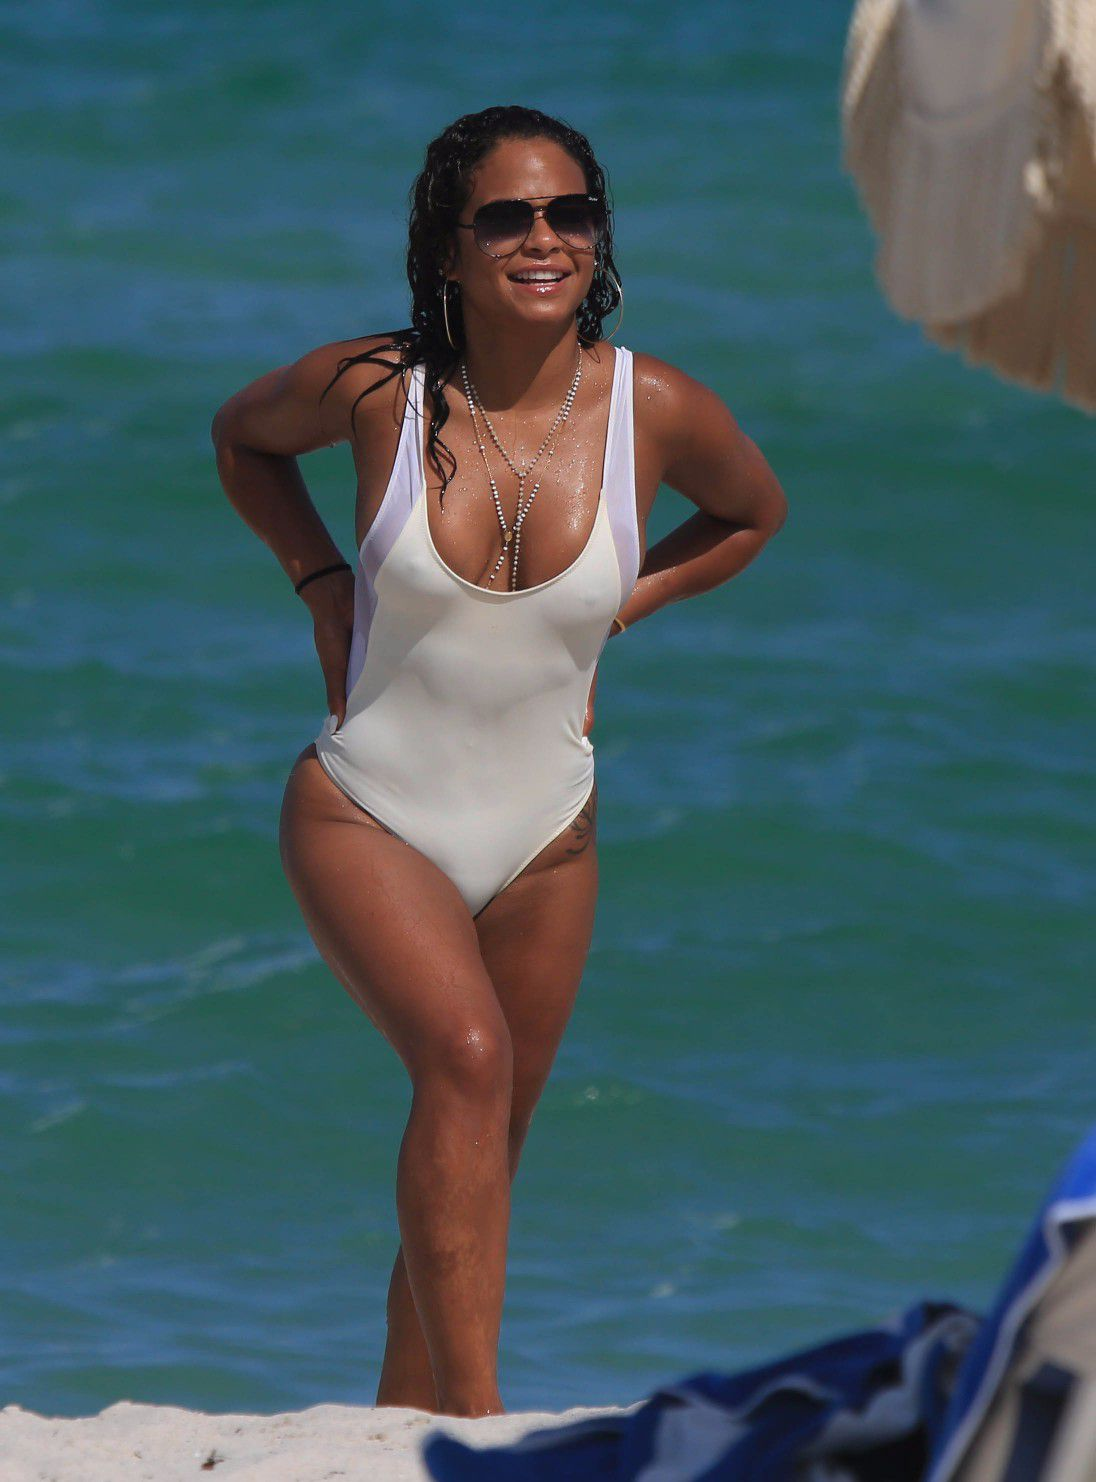 Christina-Milian-Pokies-In-White-Swimsuit-On-The-Beach-In -1909